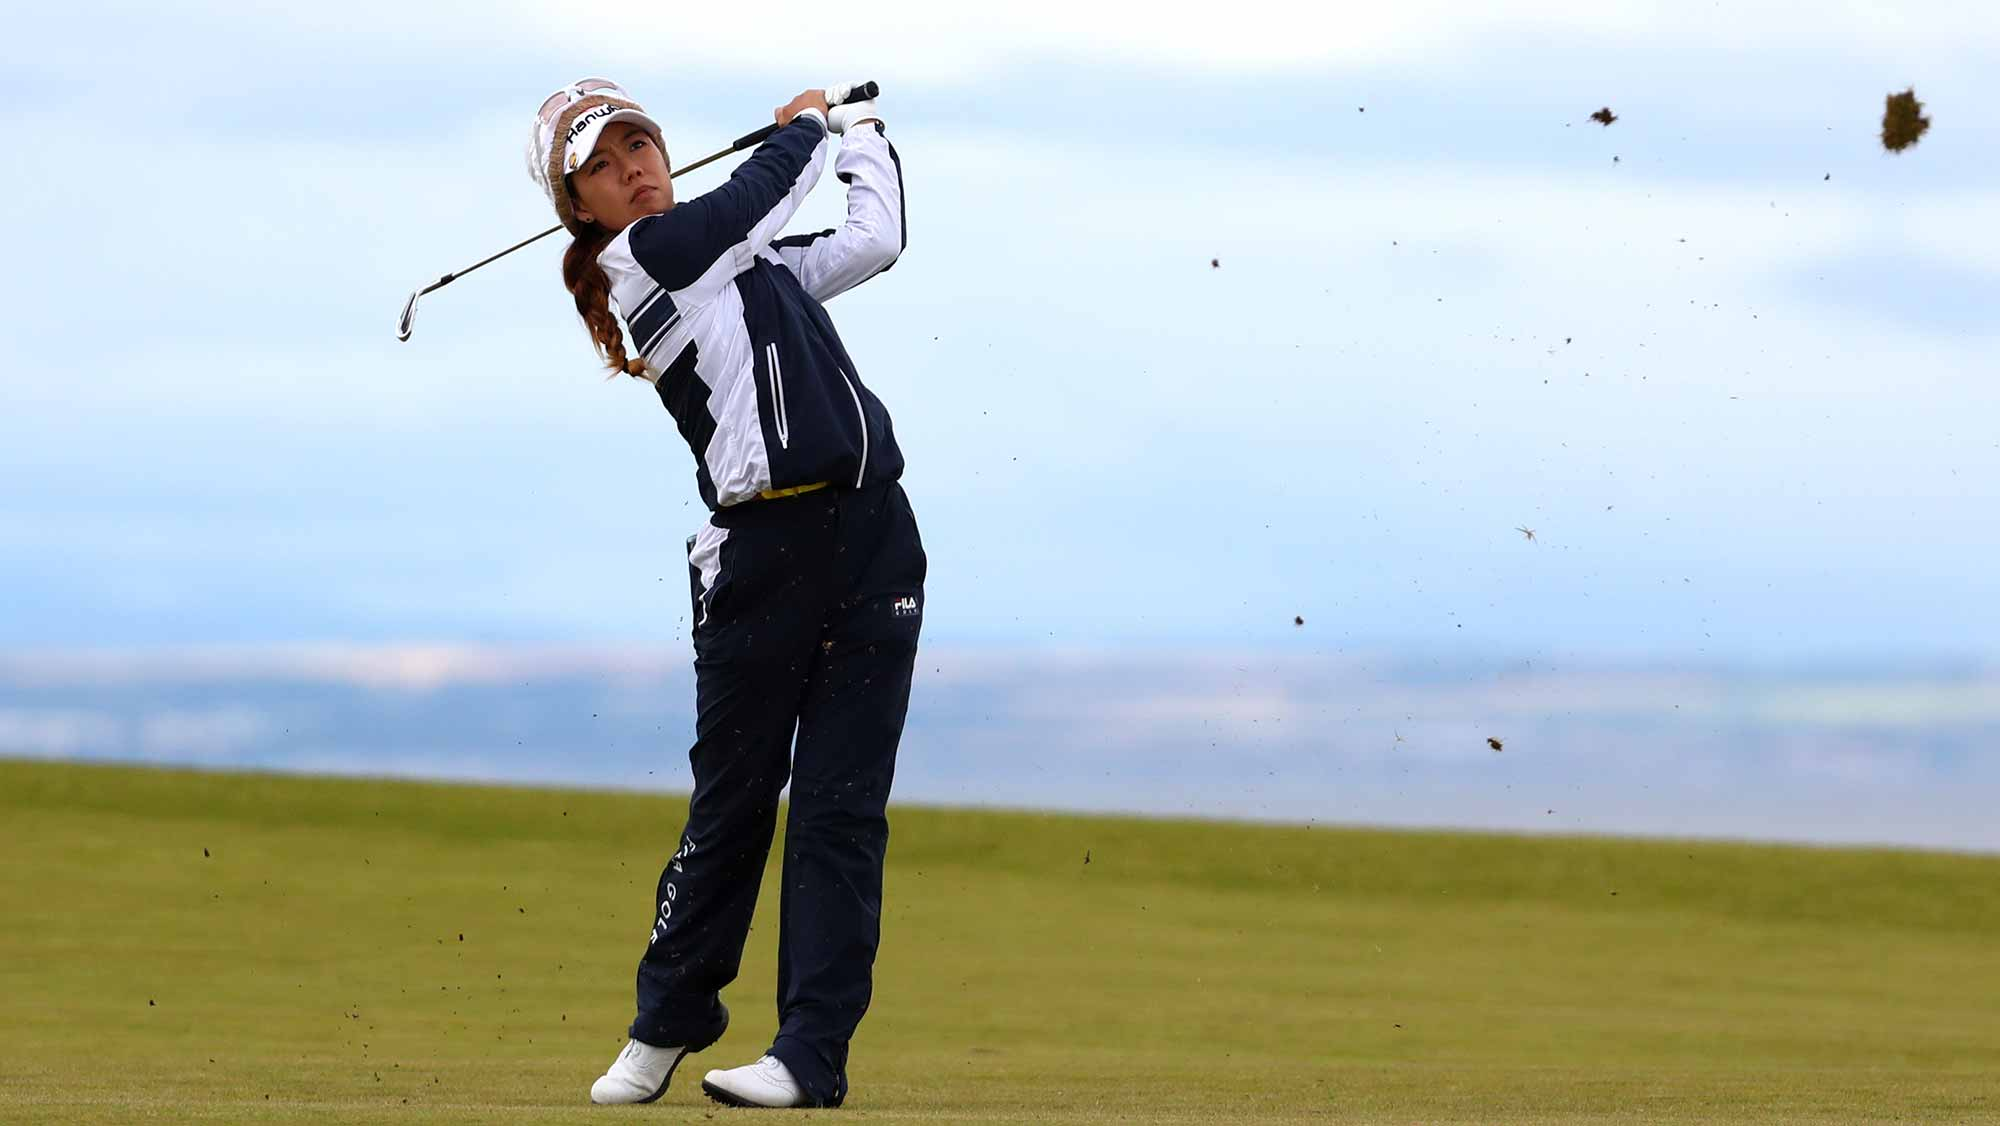 enny Shin of Korea hits her second shot on the 4th hole during the second round of the Ricoh Women's British Open at Kingsbarns Golf Links